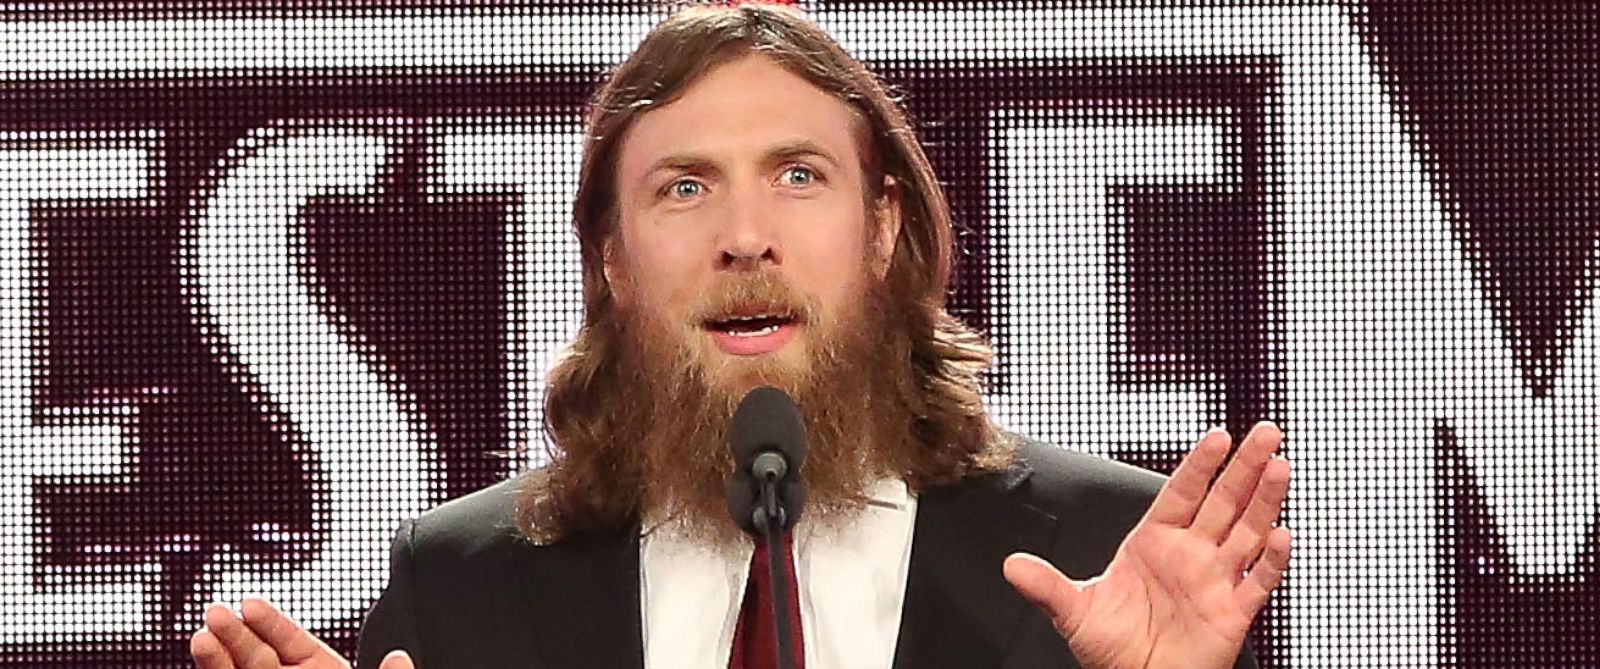 PHOTO: Daniel Bryan attends the WrestleMania 30 press conference at the Hard Rock Cafe New York on April 1, 2014 in New York City.